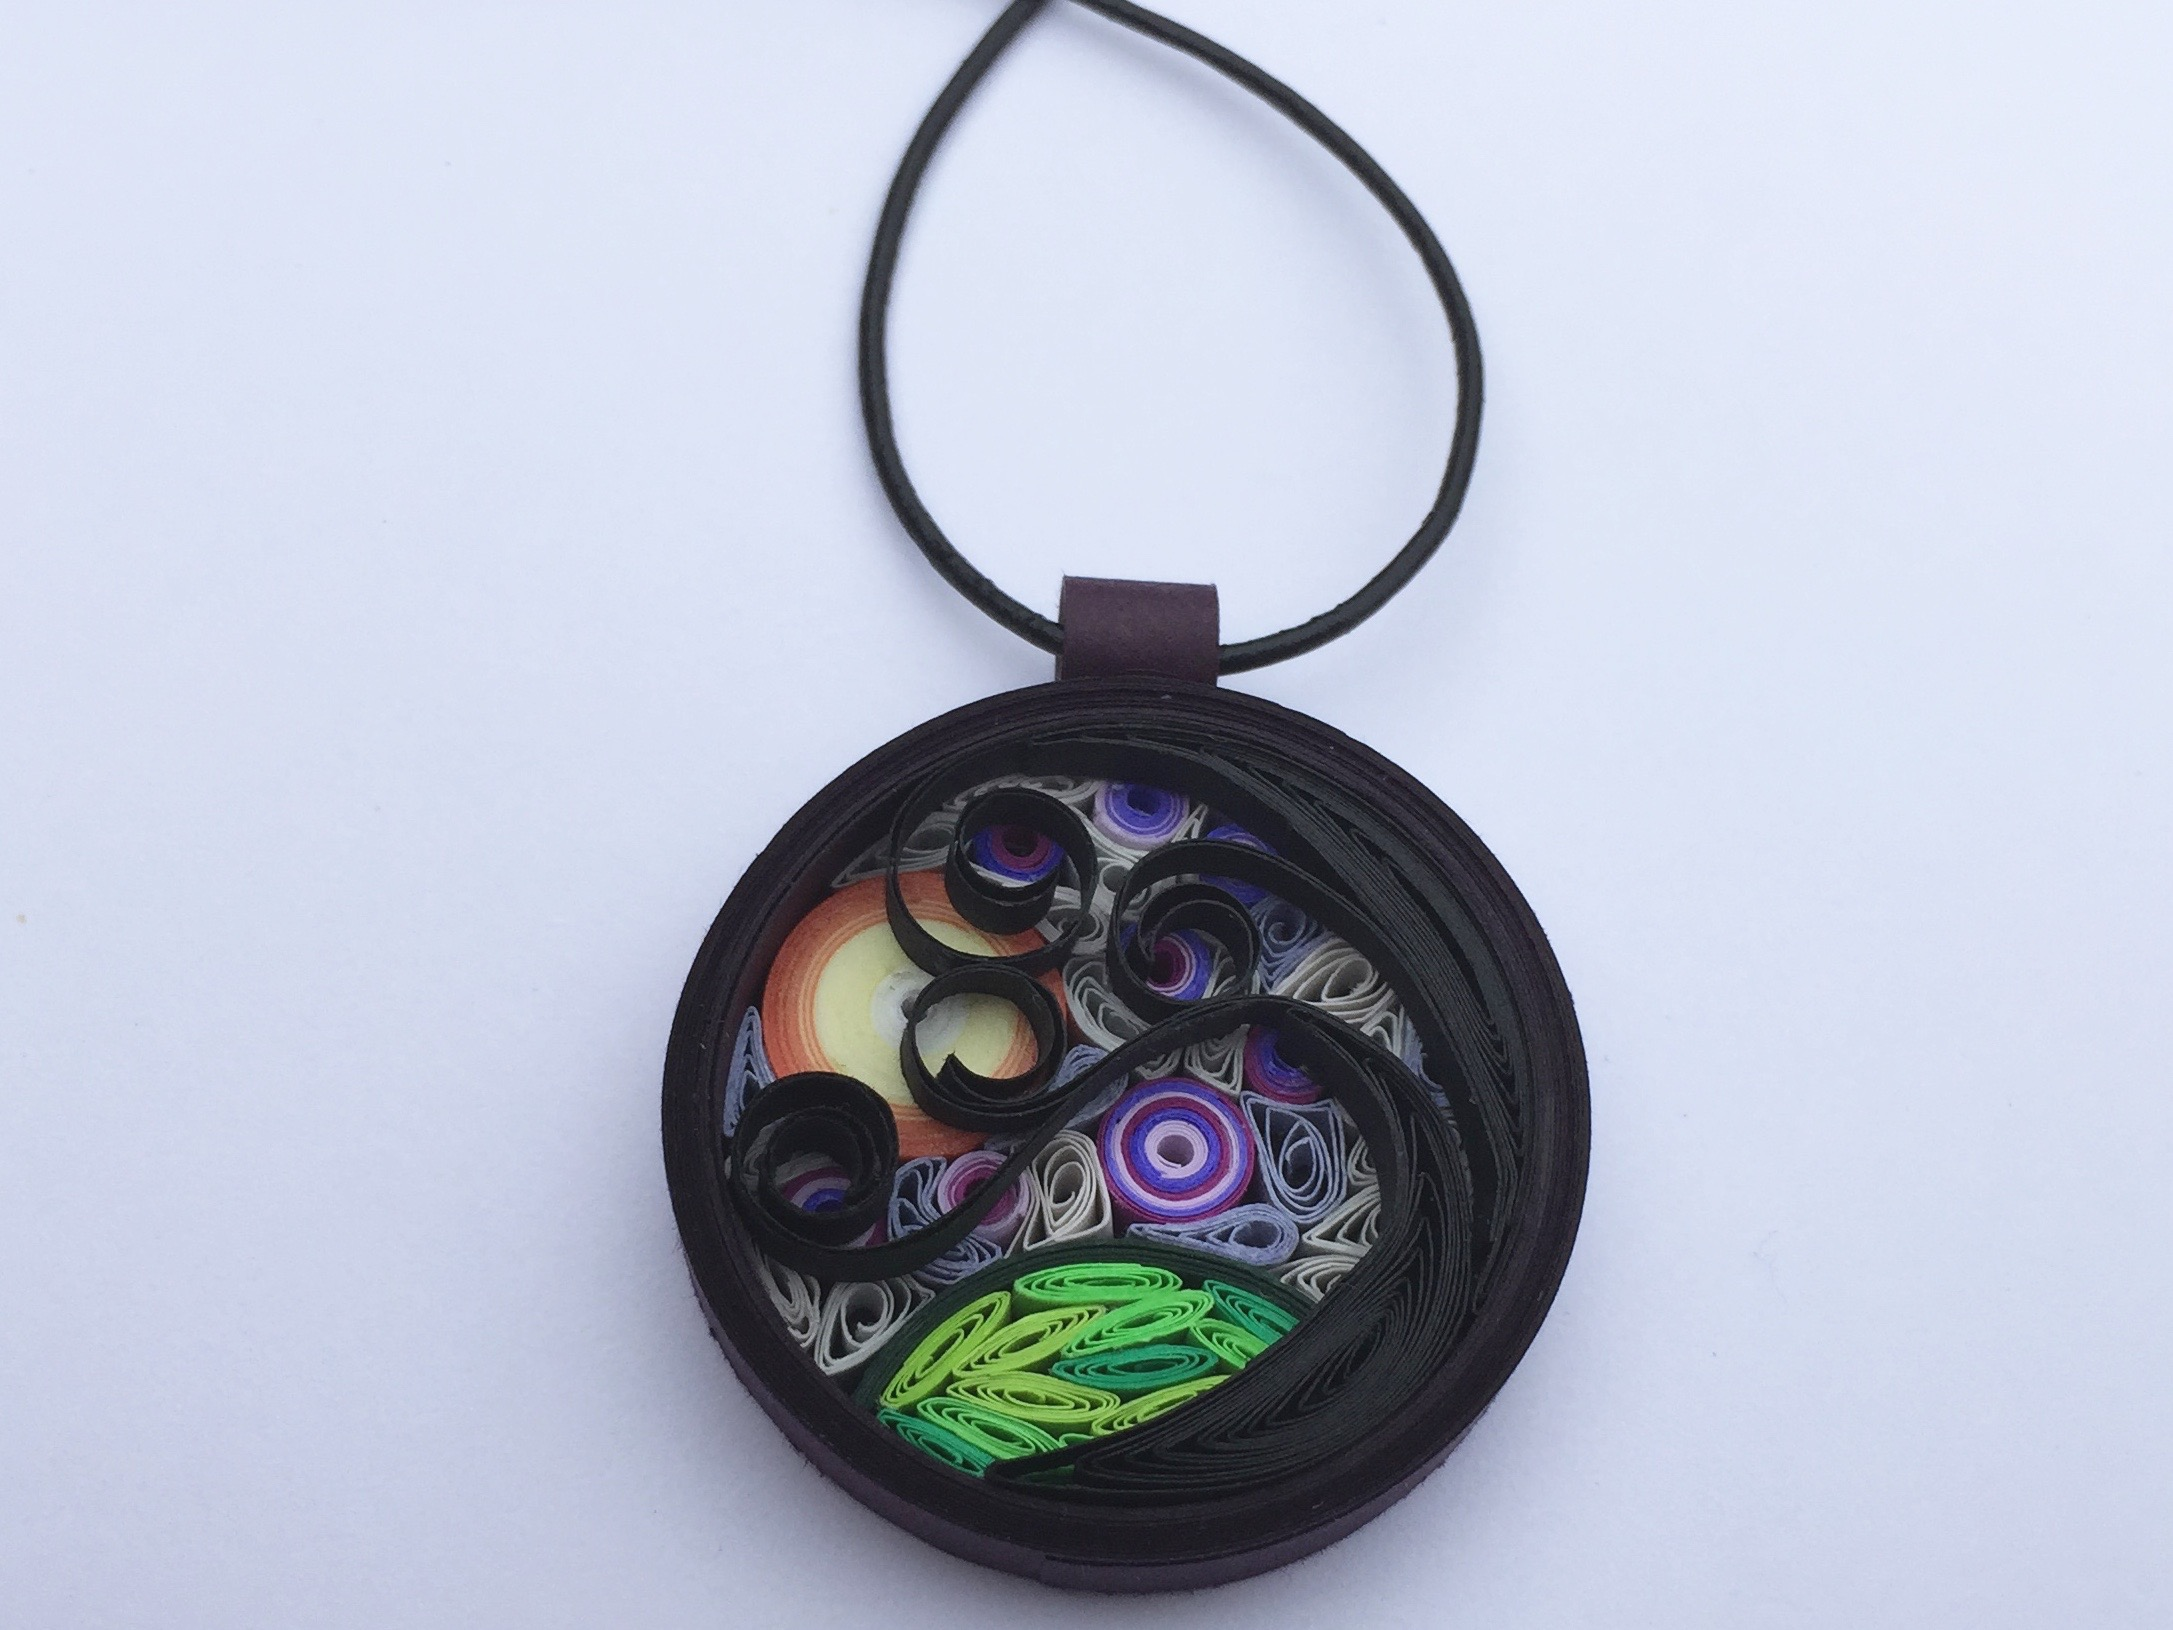 Finished autumn quilled pendant